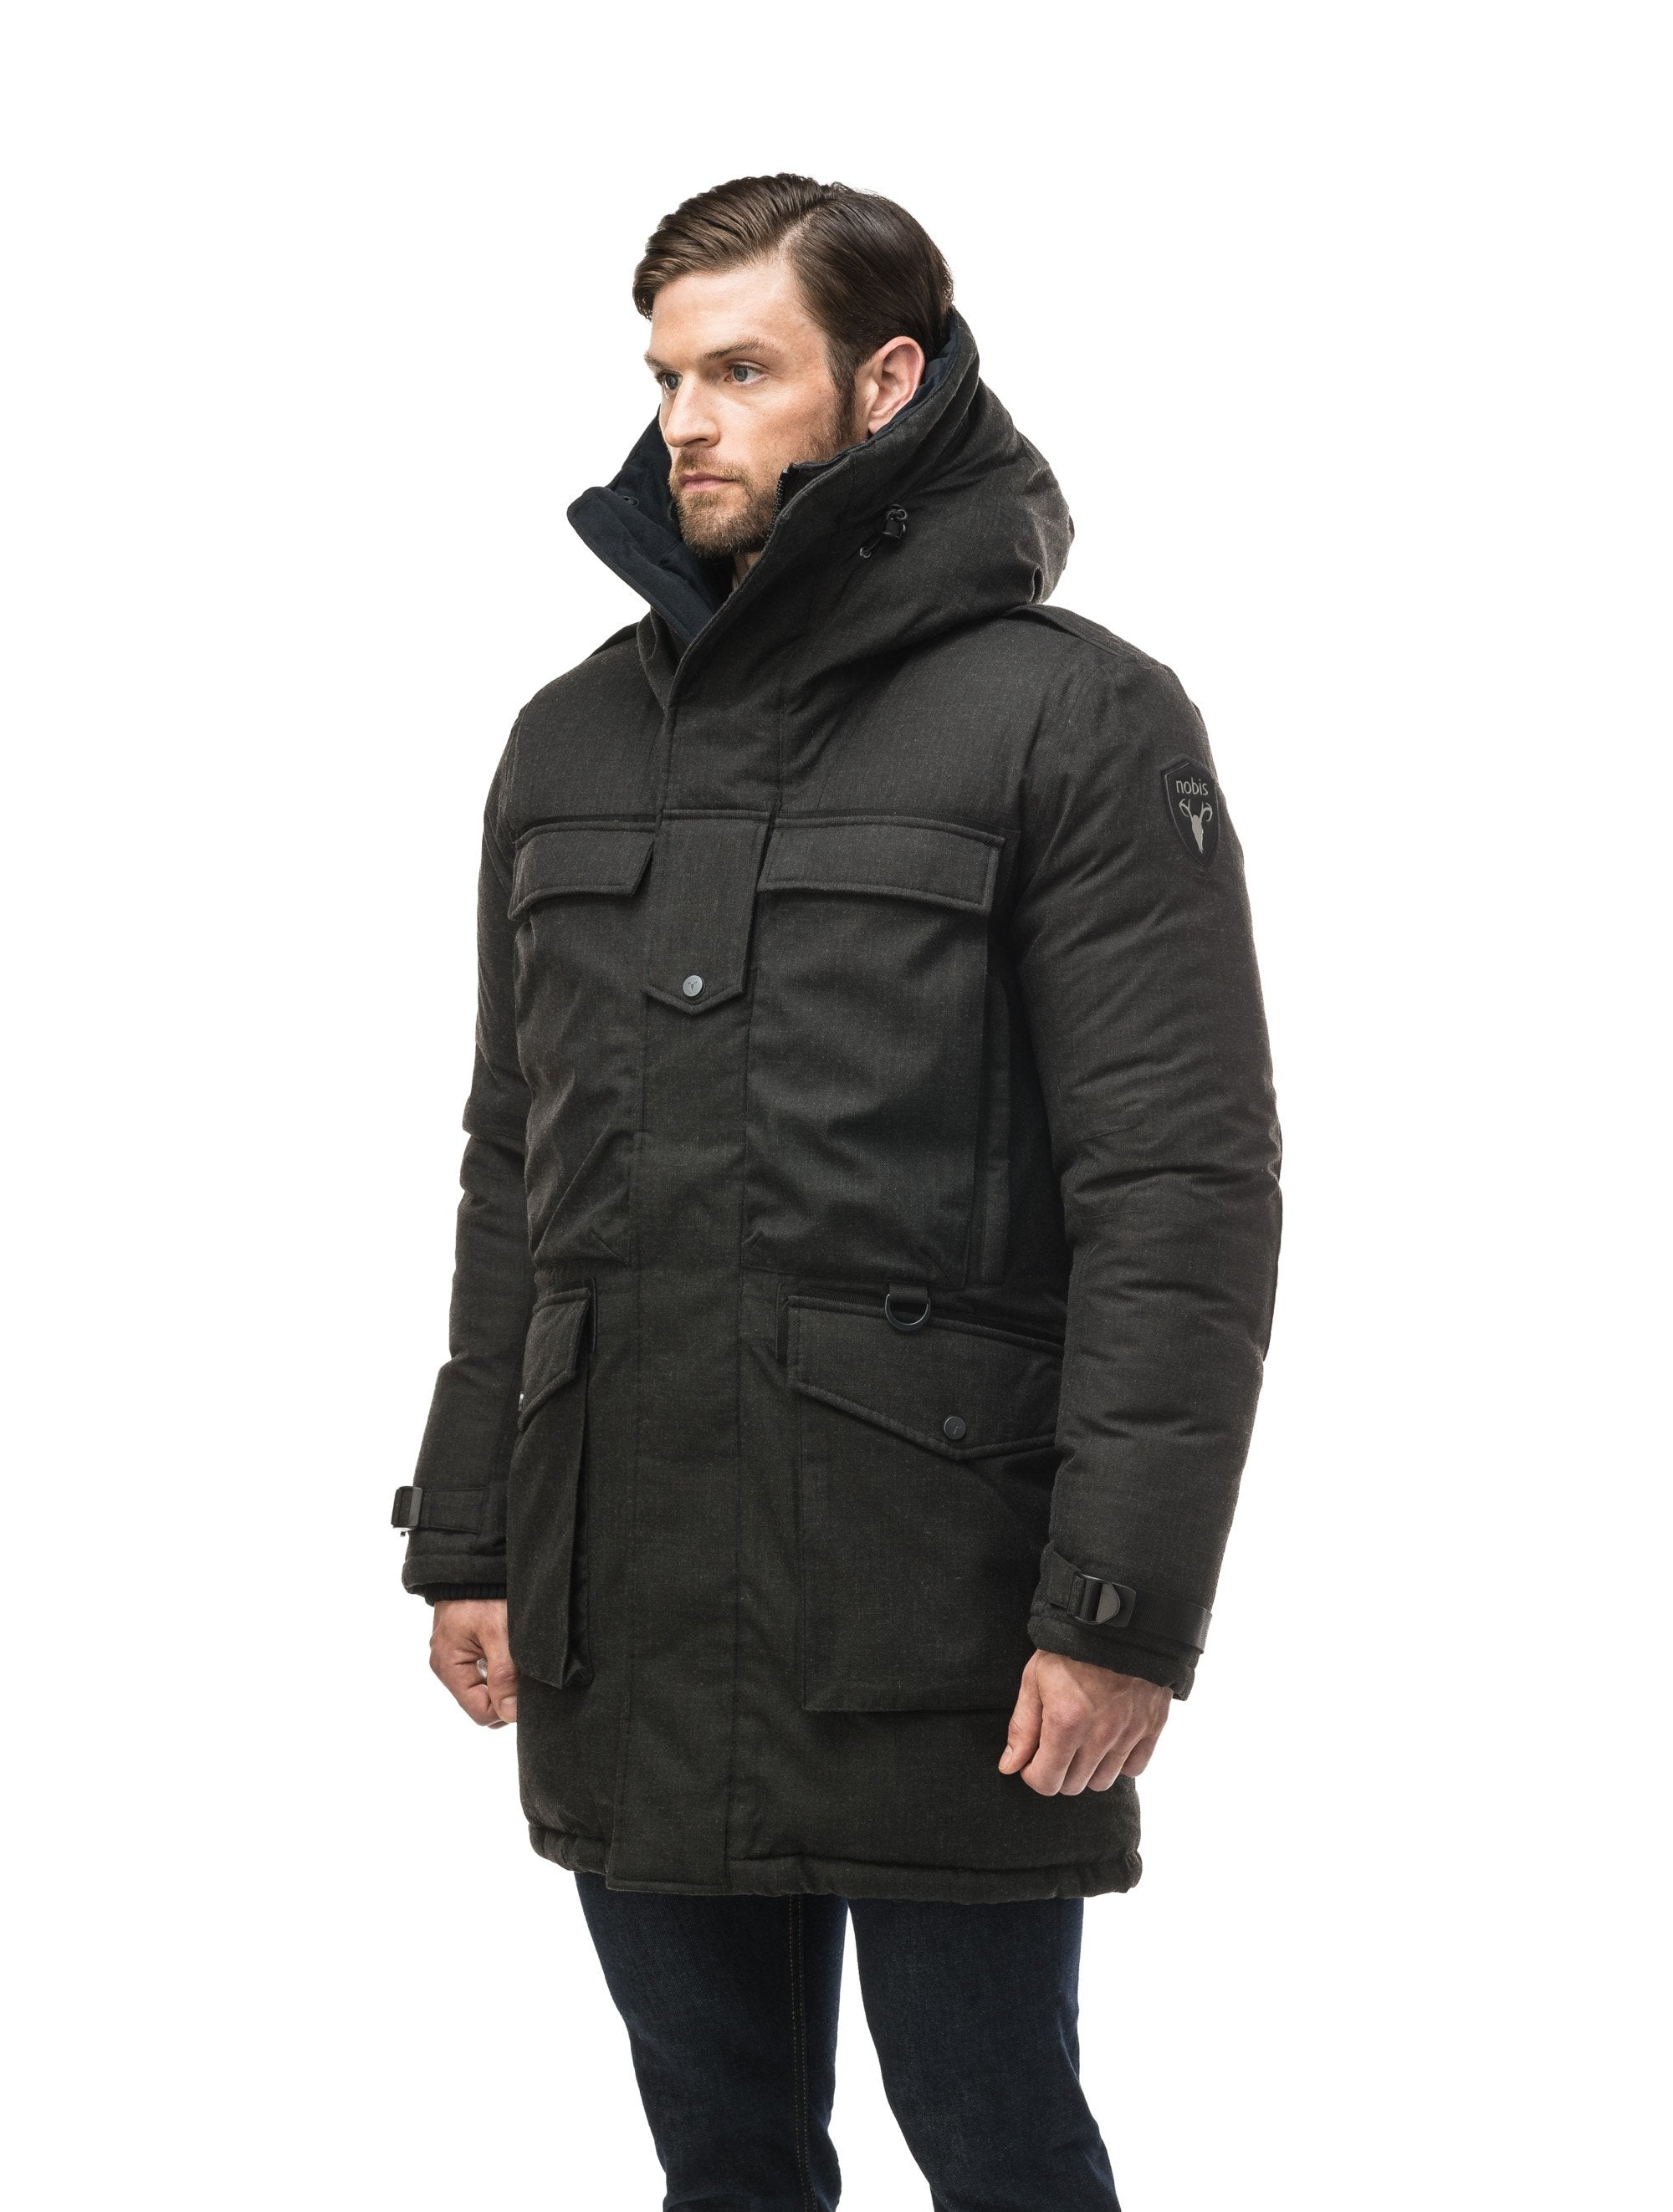 Men's extreme wamrth down filled parka with baffle box construction for even down distribution in H. Black | color